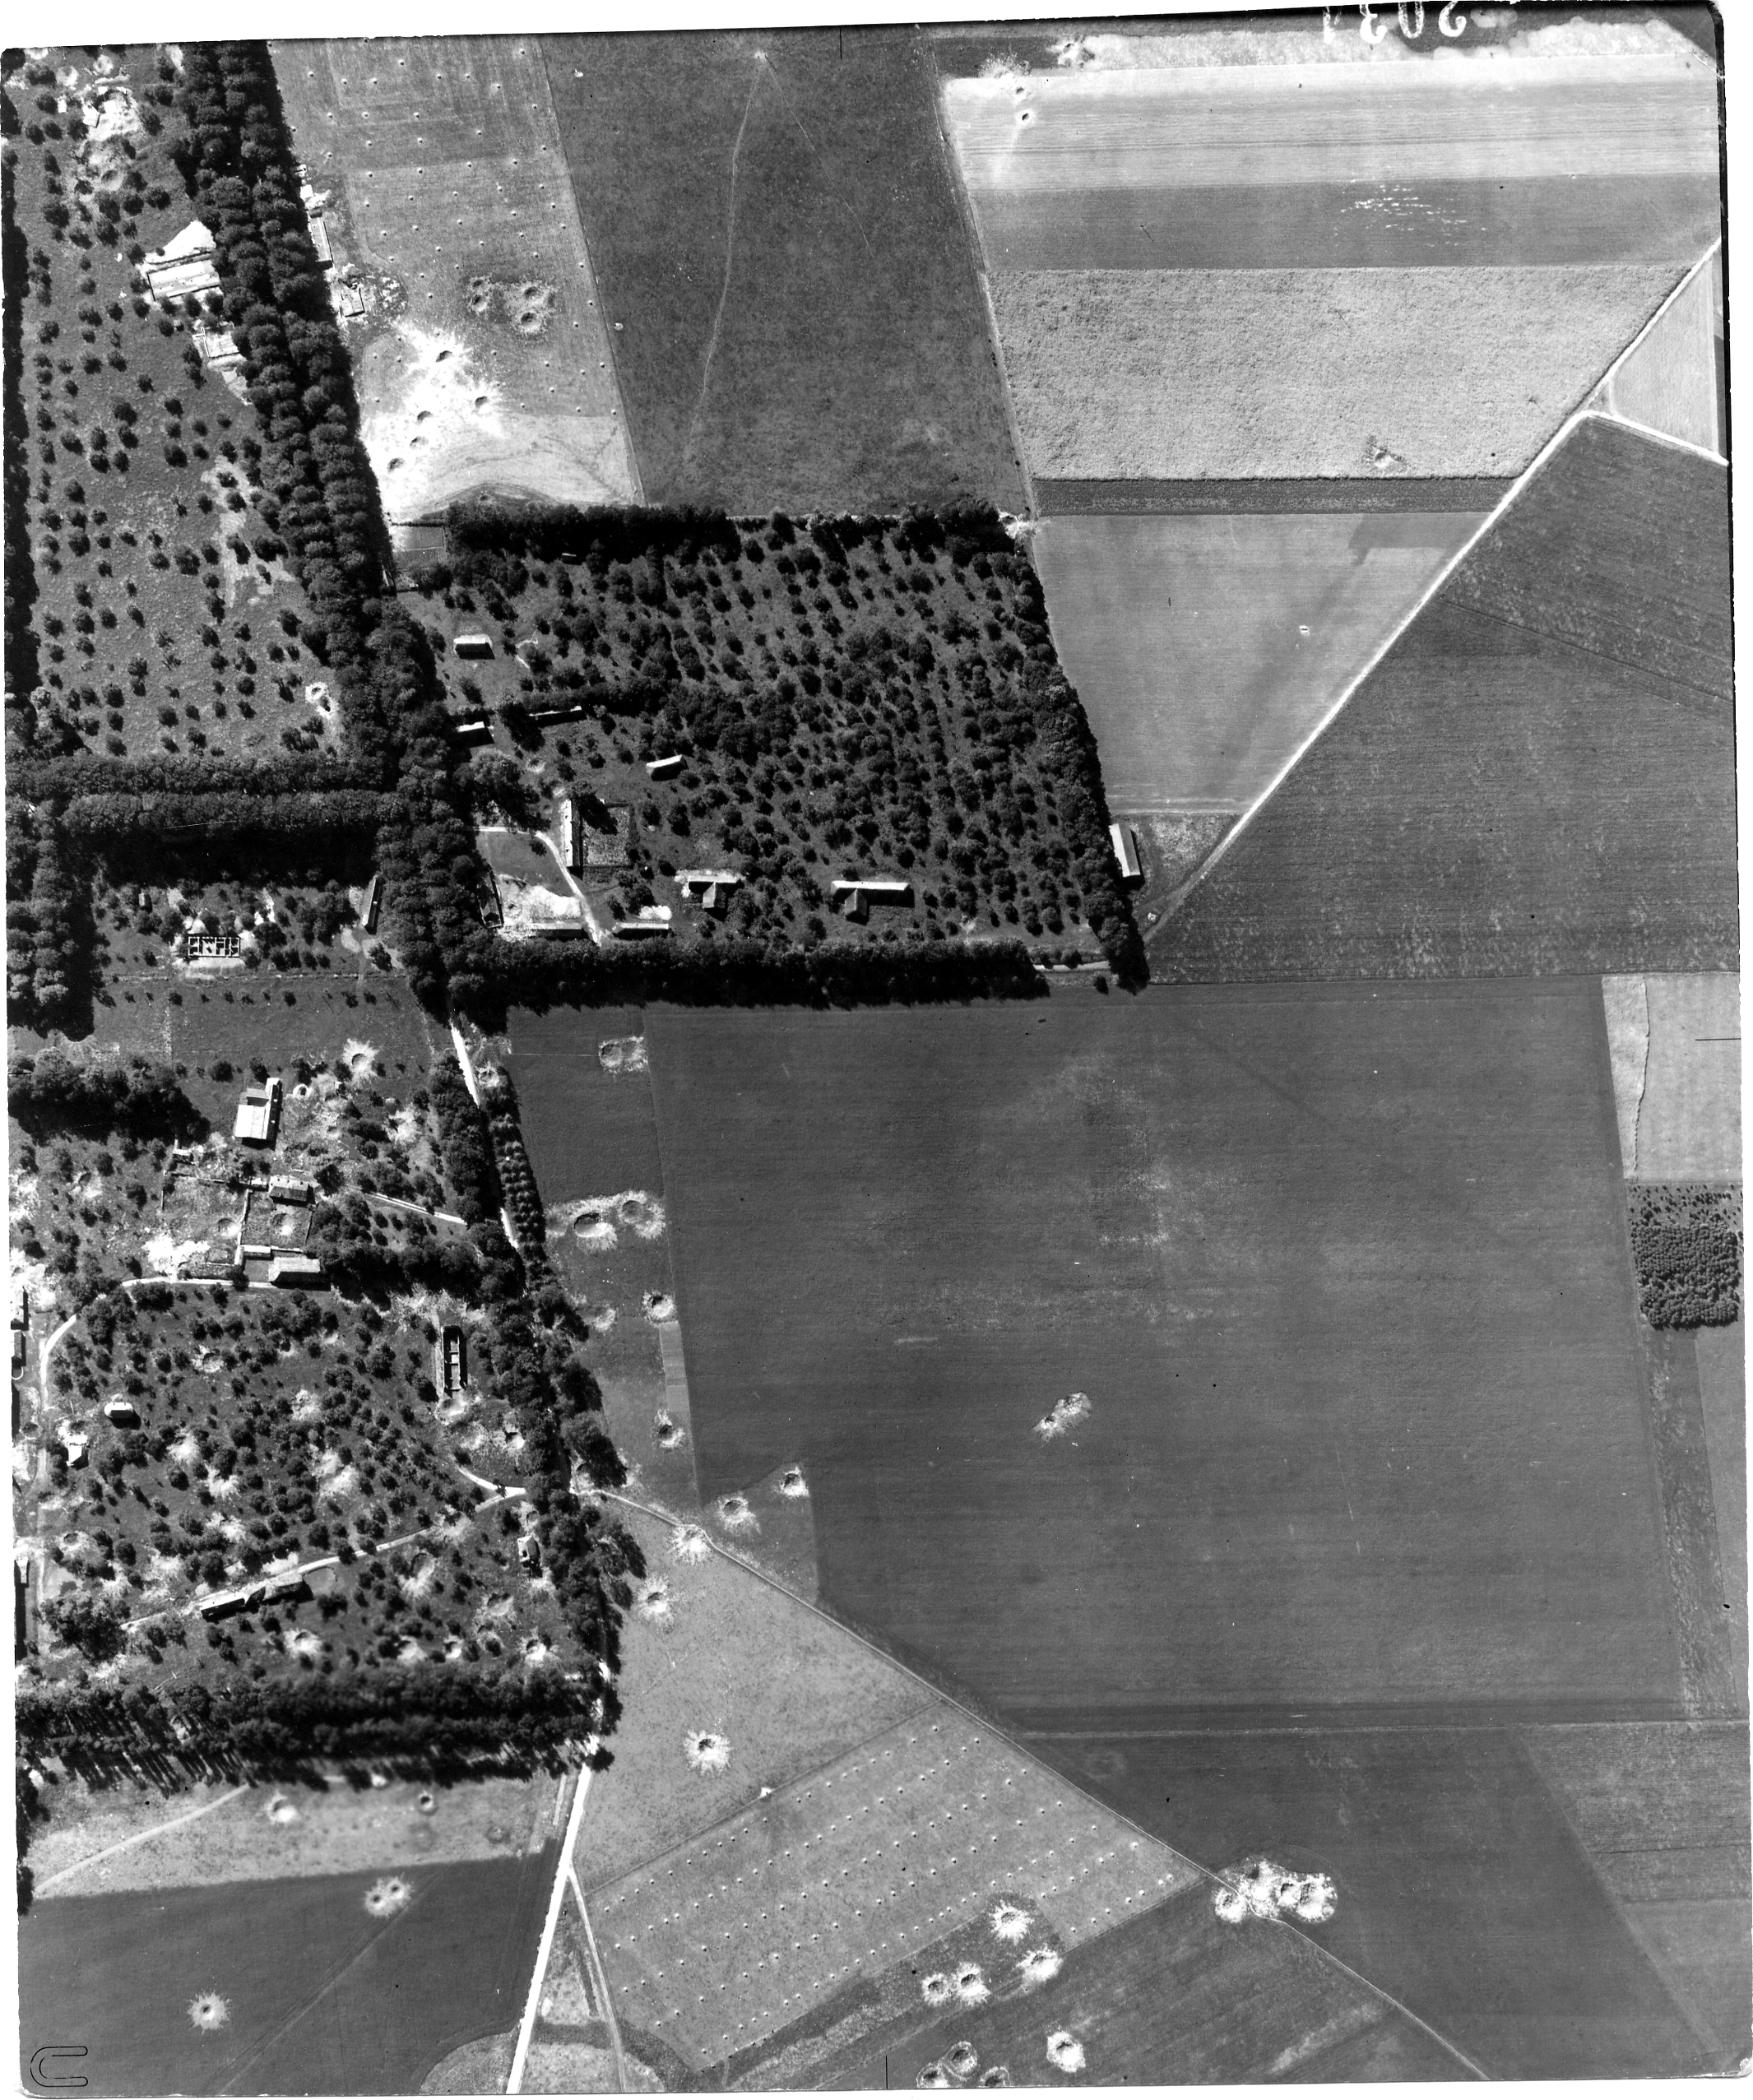 USAAAF 7PG22FS aerial recon photo to Chateau de Bosmelet V Weapons Noball France July 7 1944 01